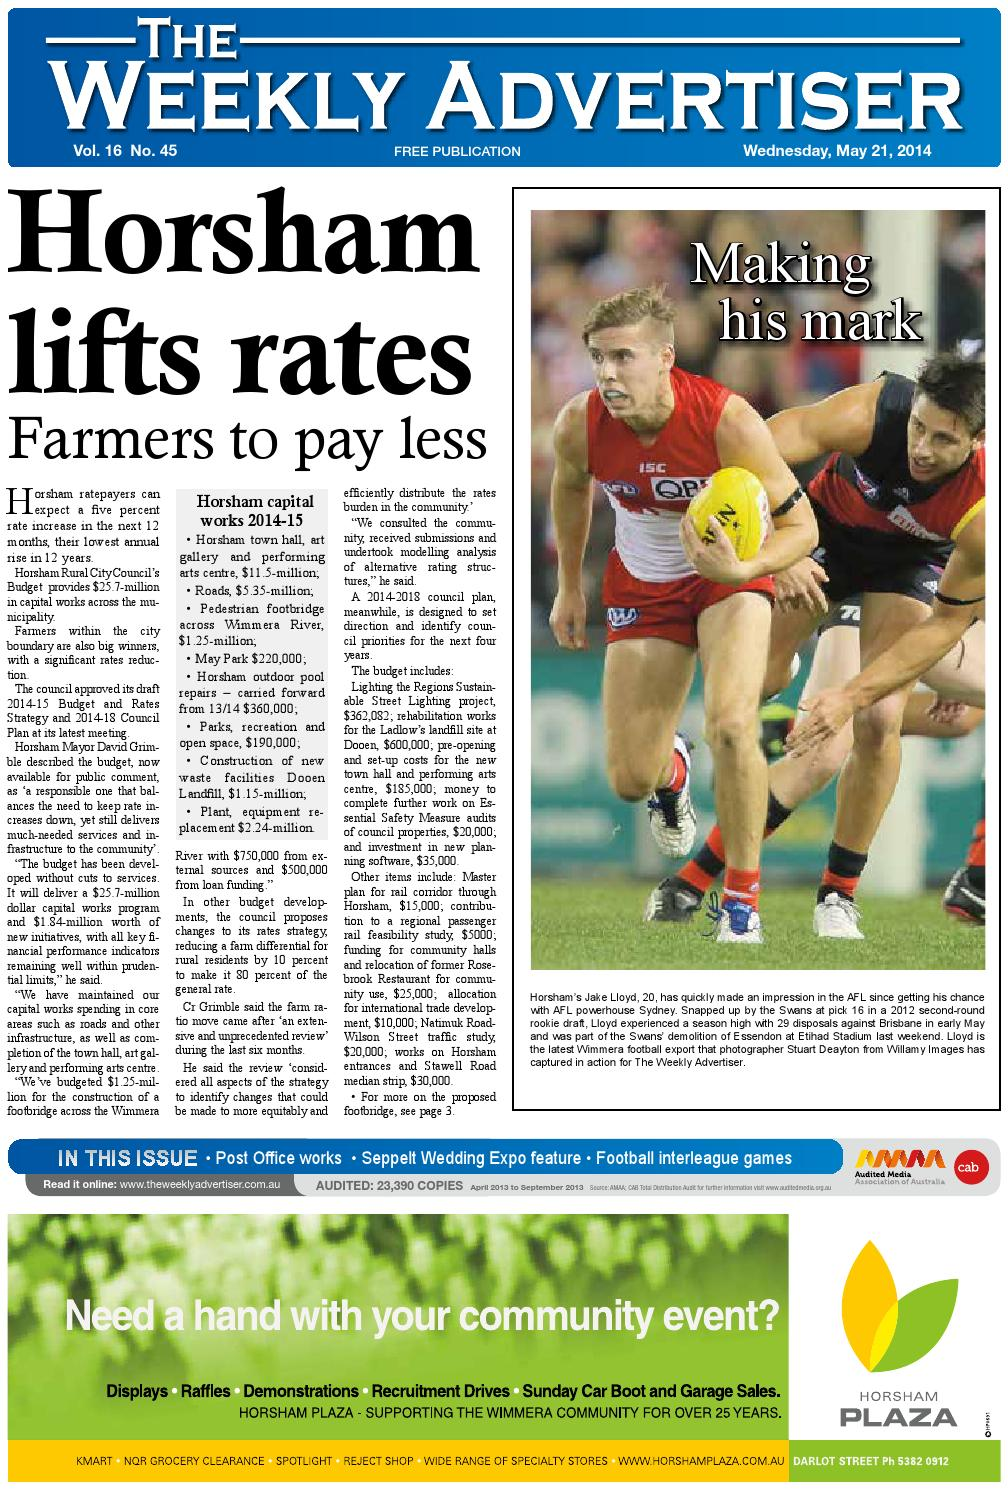 The Weekly Advertiser Wednesday May 21 2014 By The Weekly